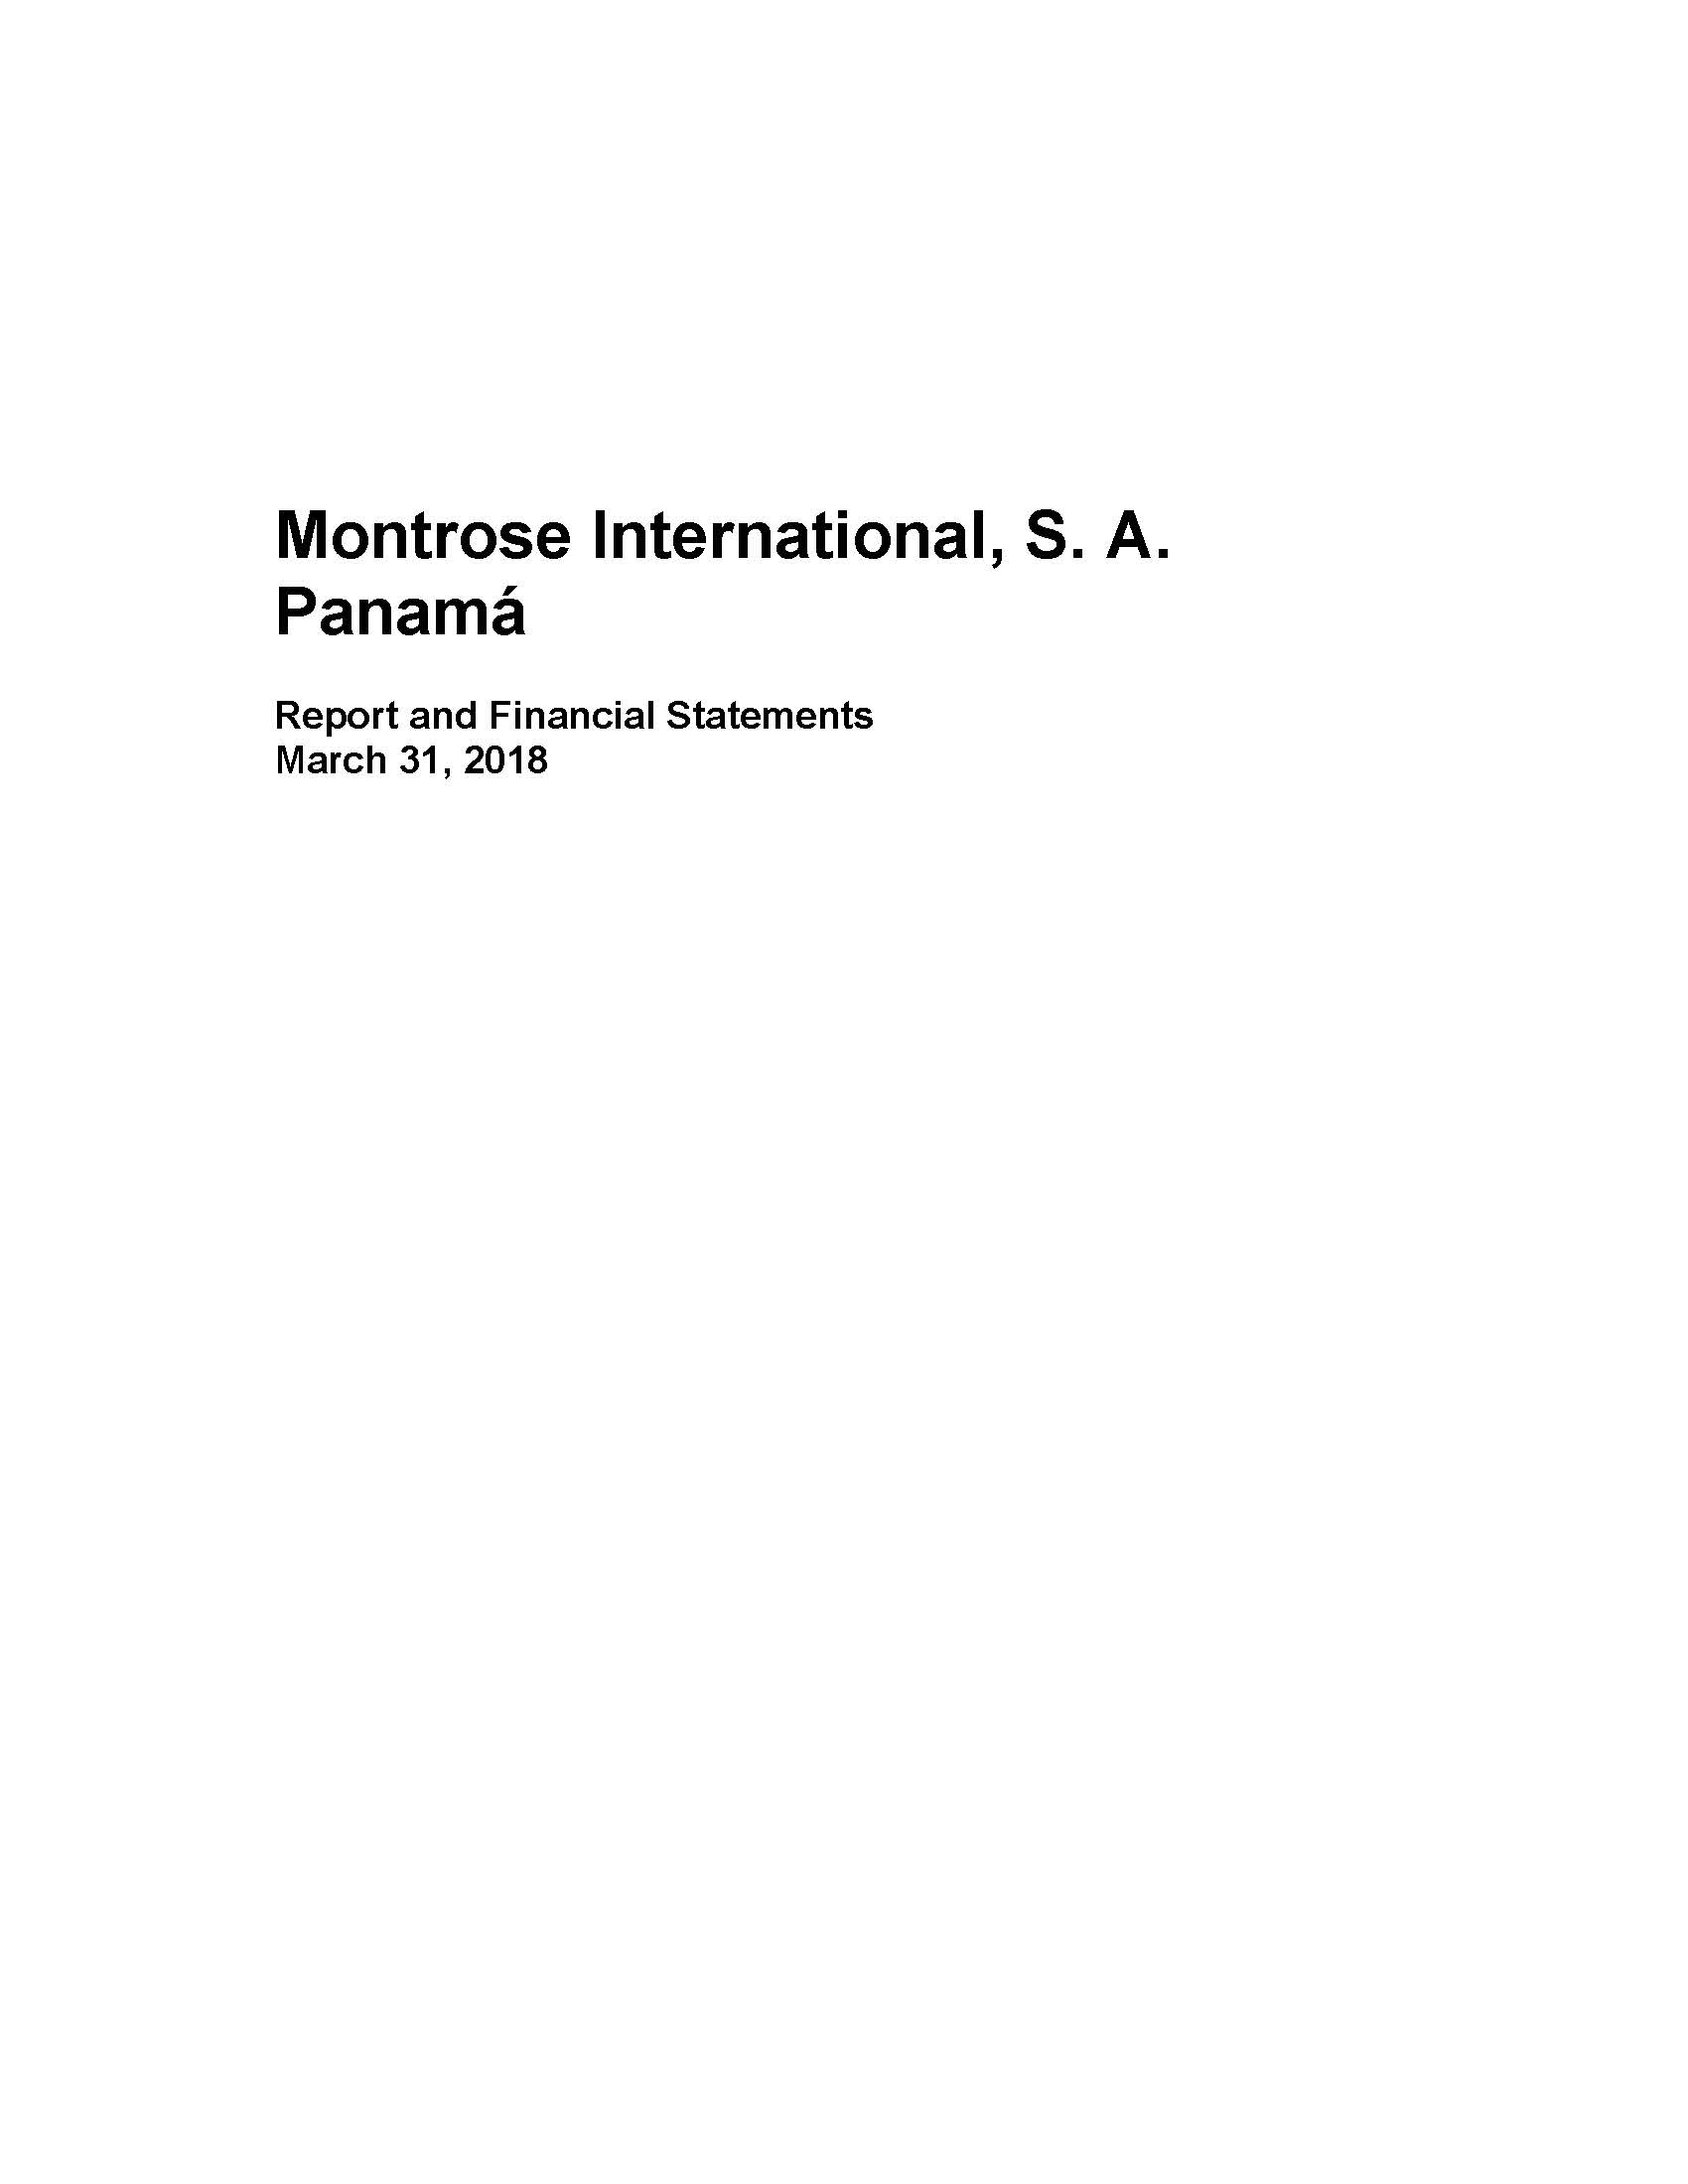 Montrose International S. A Panama 2017-2018